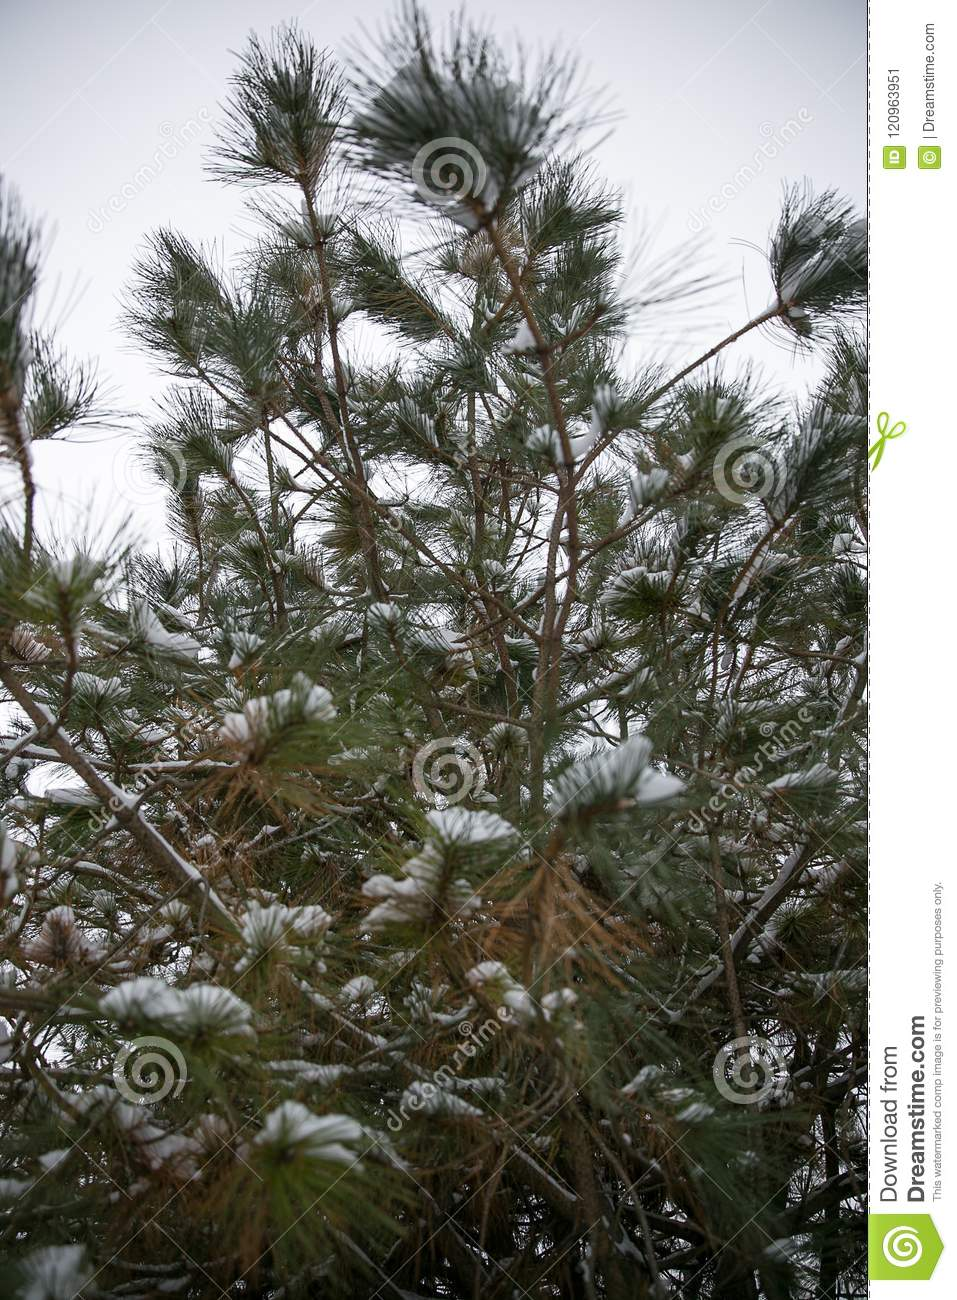 Snow Covers Pine Tree After Winter Storm Stock Image ...